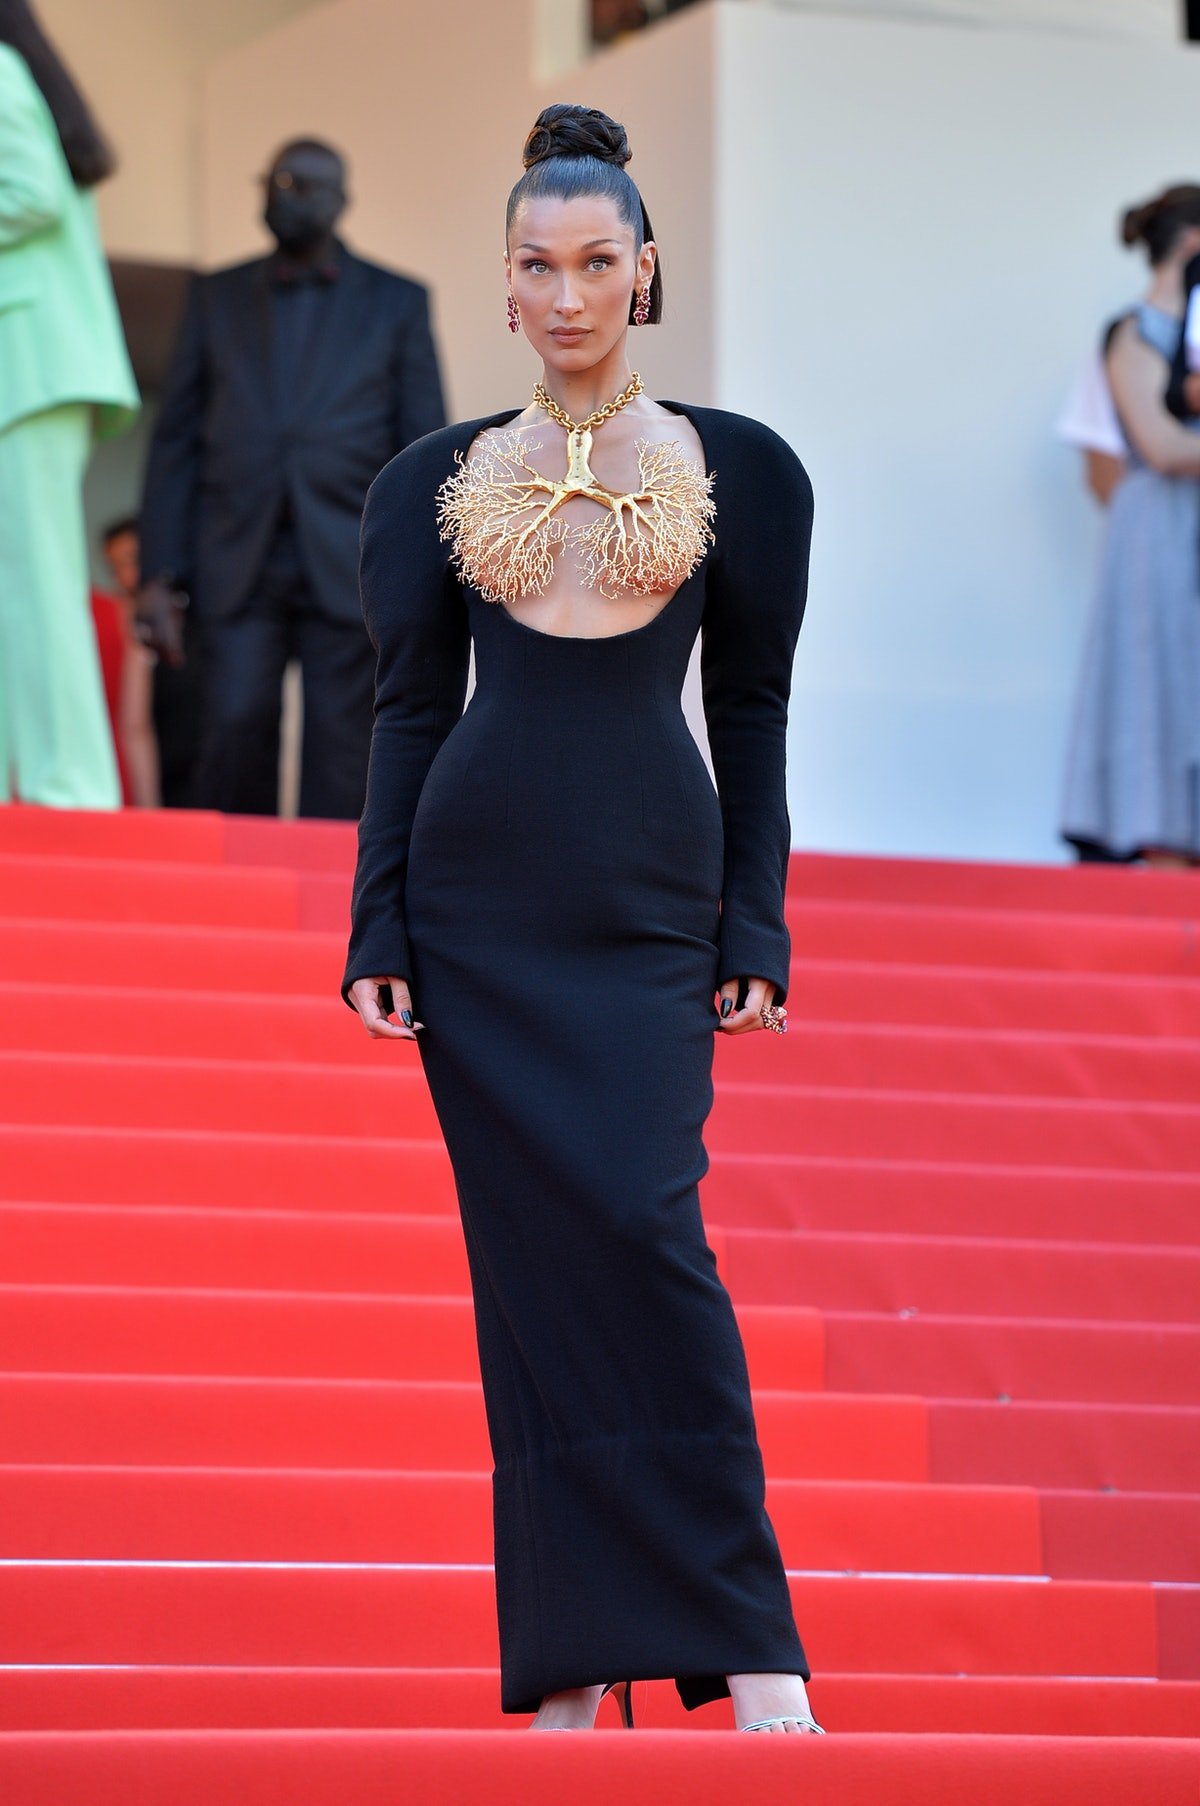 """11 July 2021, France, Cannes: Model Bella Hadid attends the screening of the film """"Tre Piani"""" during the 74th Annual Cannes Film Festival at Palais des Festivals. Photo: Stefanie Rex/dpa-Zentralbild/dpa (Photo by Stefanie Rex/picture alliance via Getty Images)"""